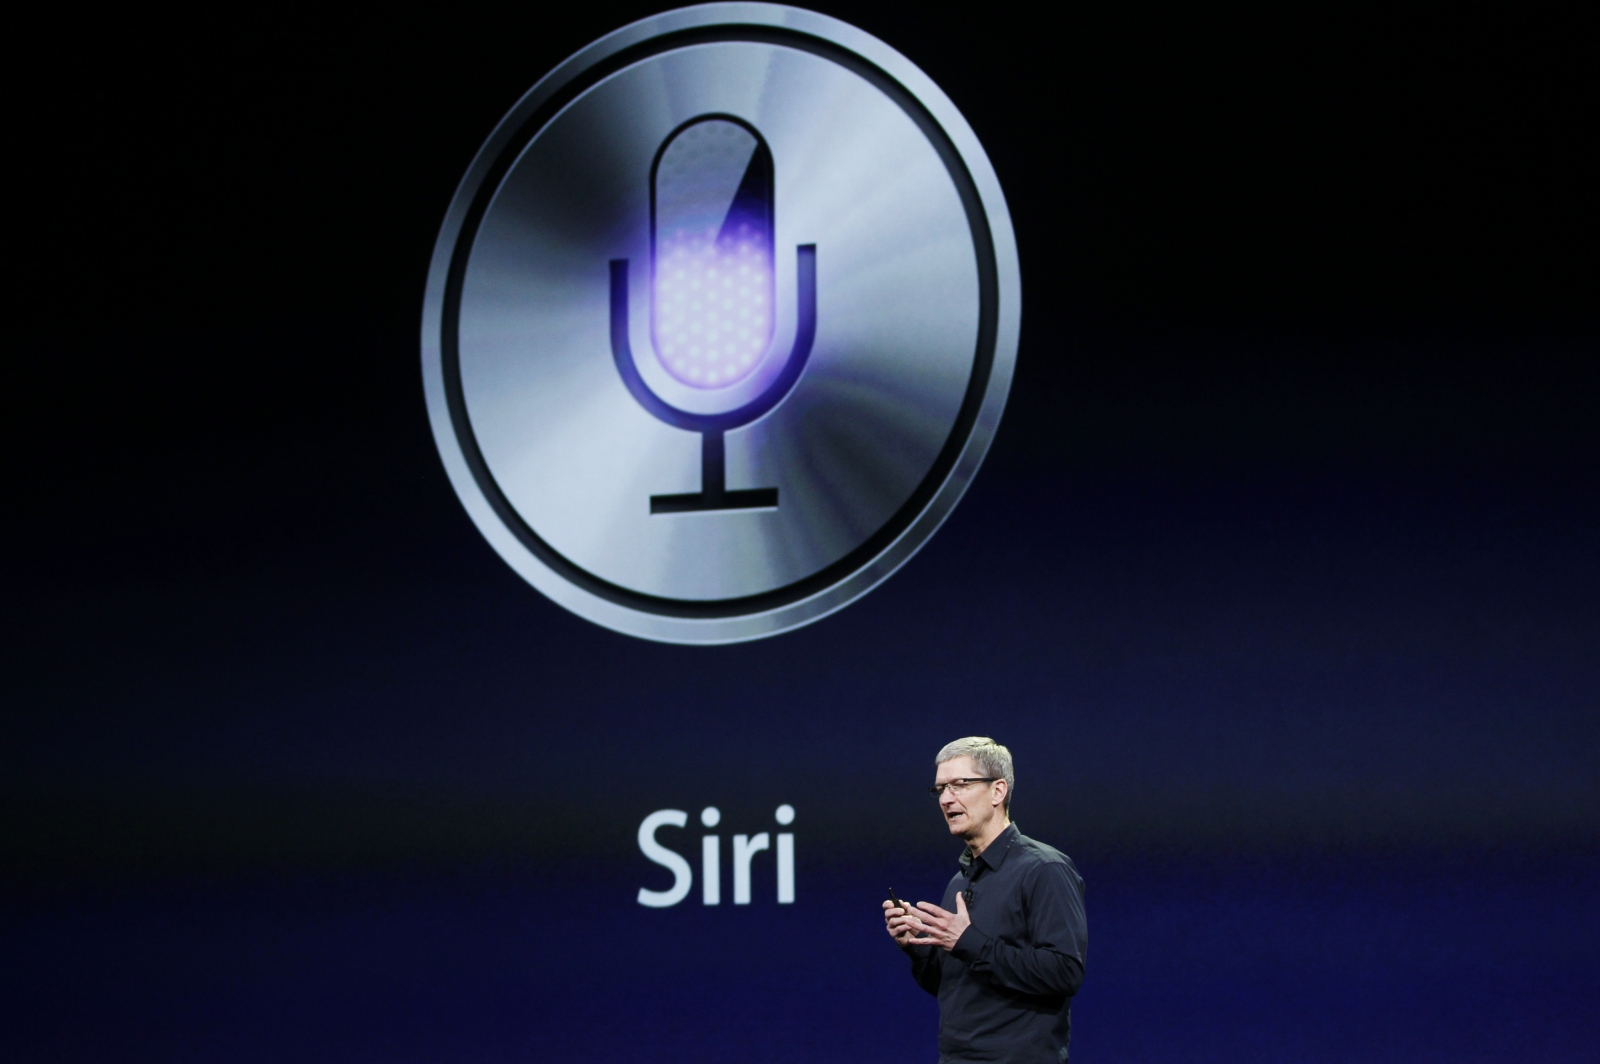 Siri Used to Help Hide Victim's Body